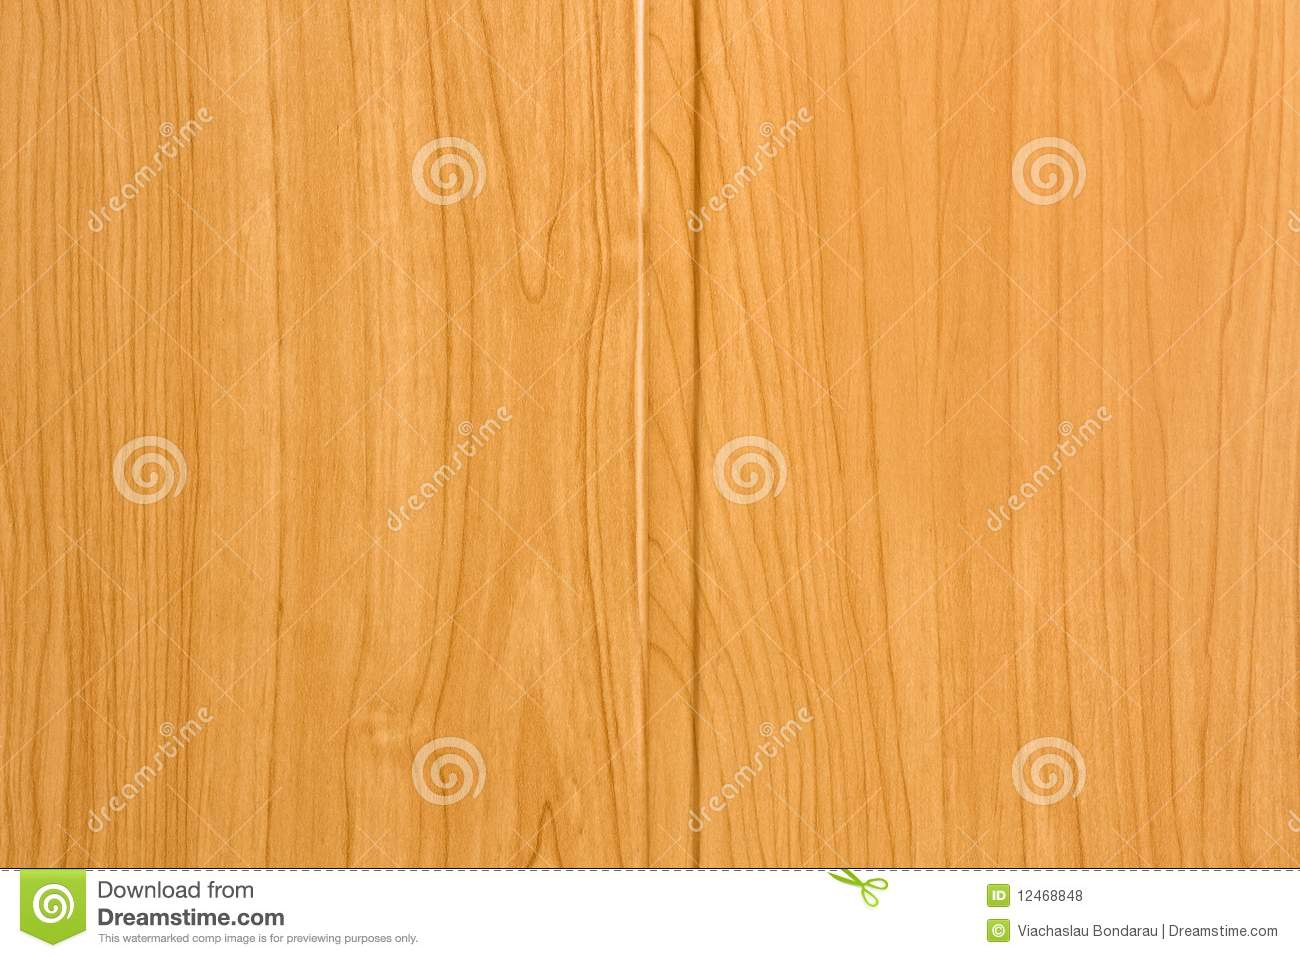 Wood texture royalty free stock photos image 12468848 for Laminate floor panels